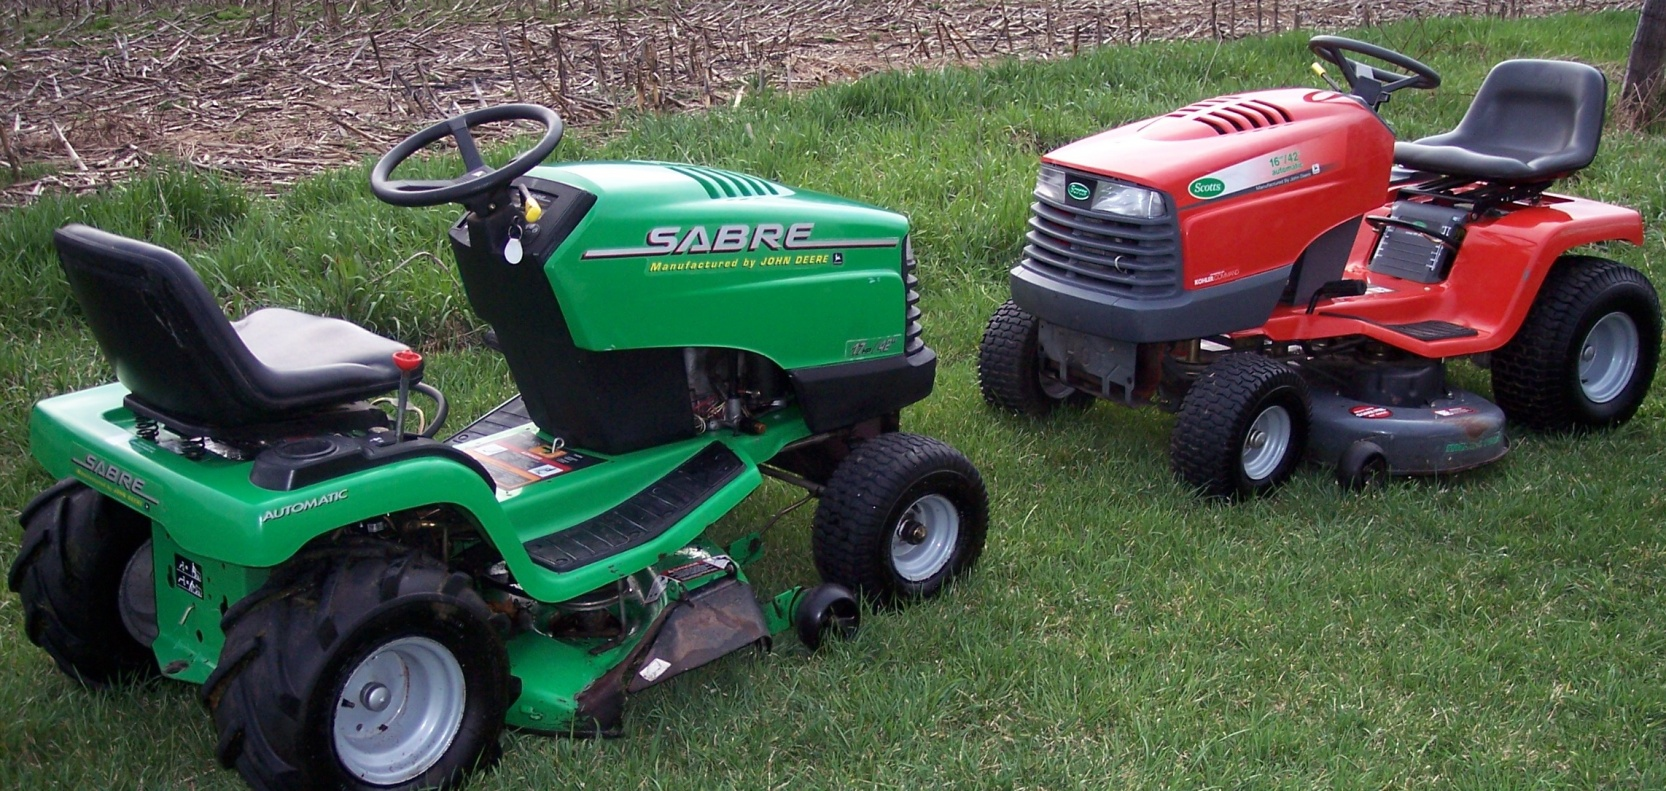 John Deere Sabre >> Sabre 1742 Scotts 1642 Hydro S Mytractorforum Com The